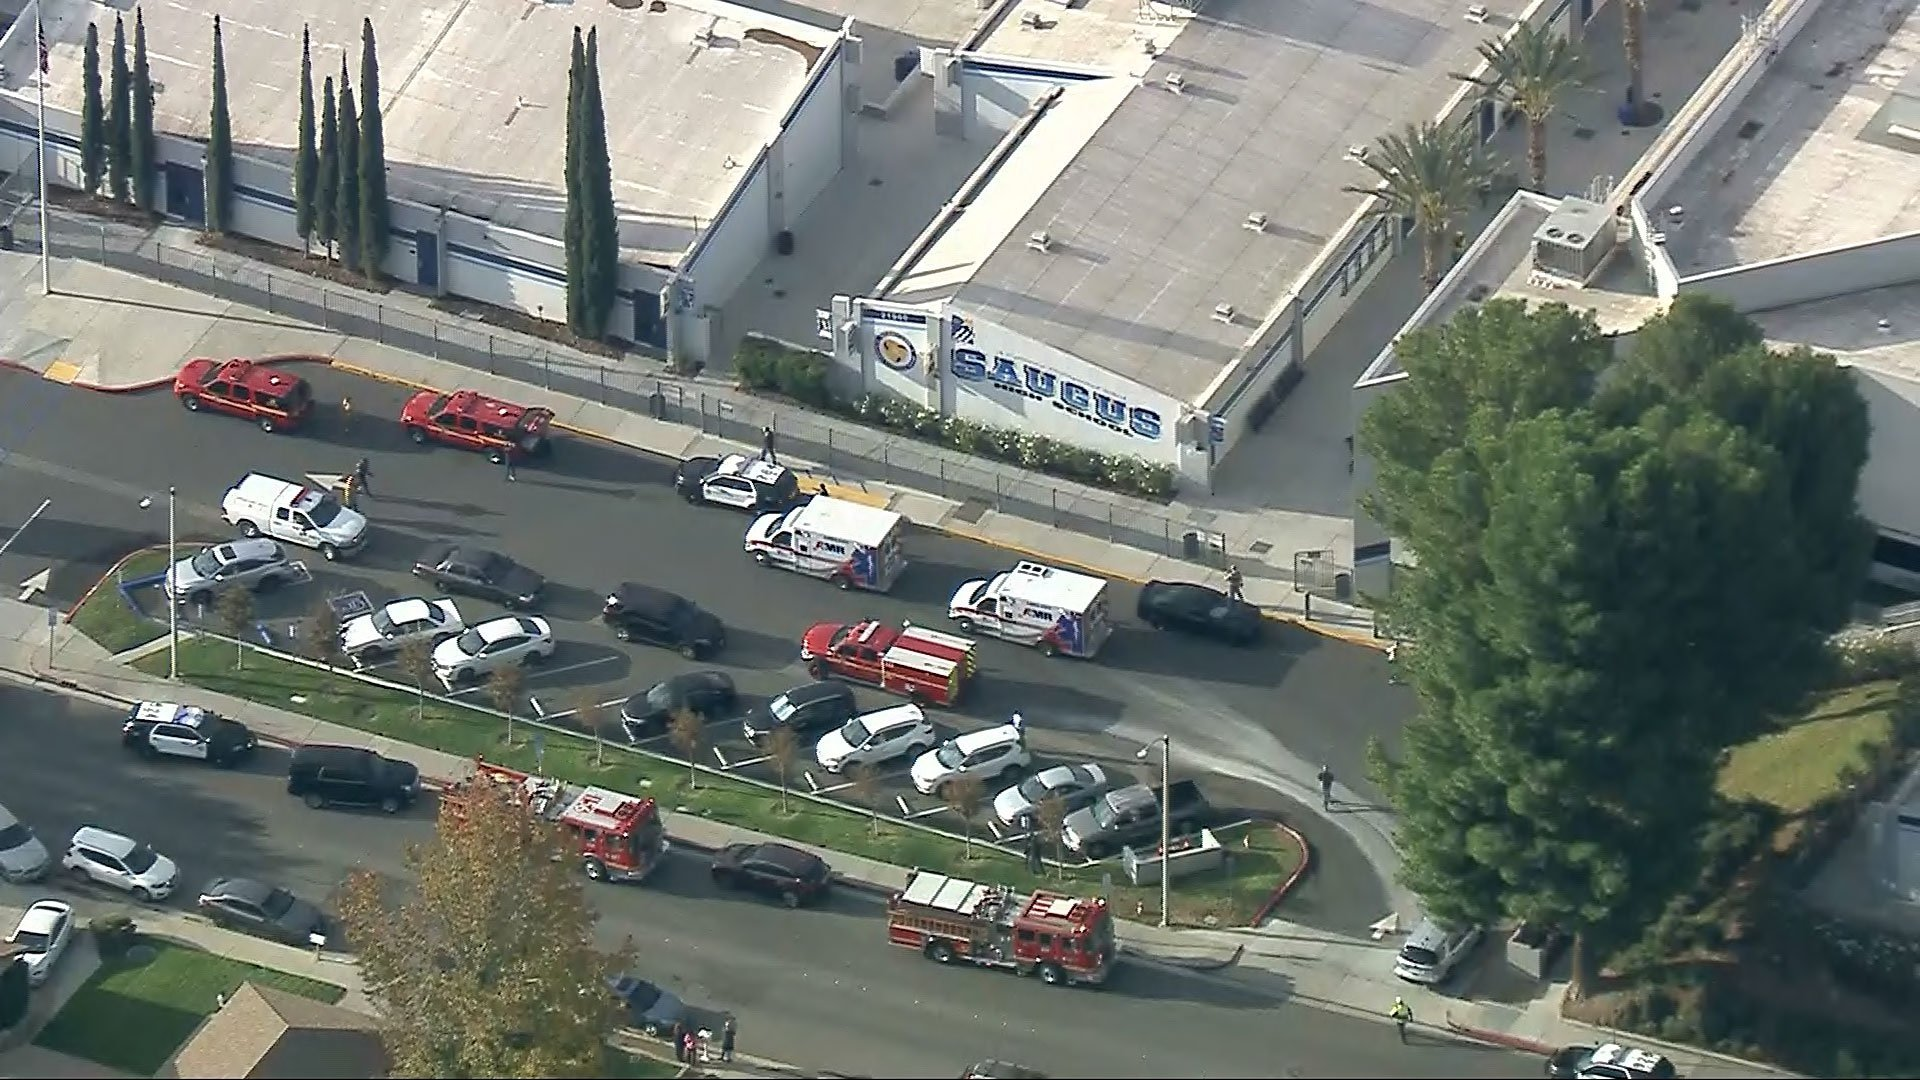 2 dead, several wounded in a shooting at Saugus High School in Santa Clarita. A suspect is in custody